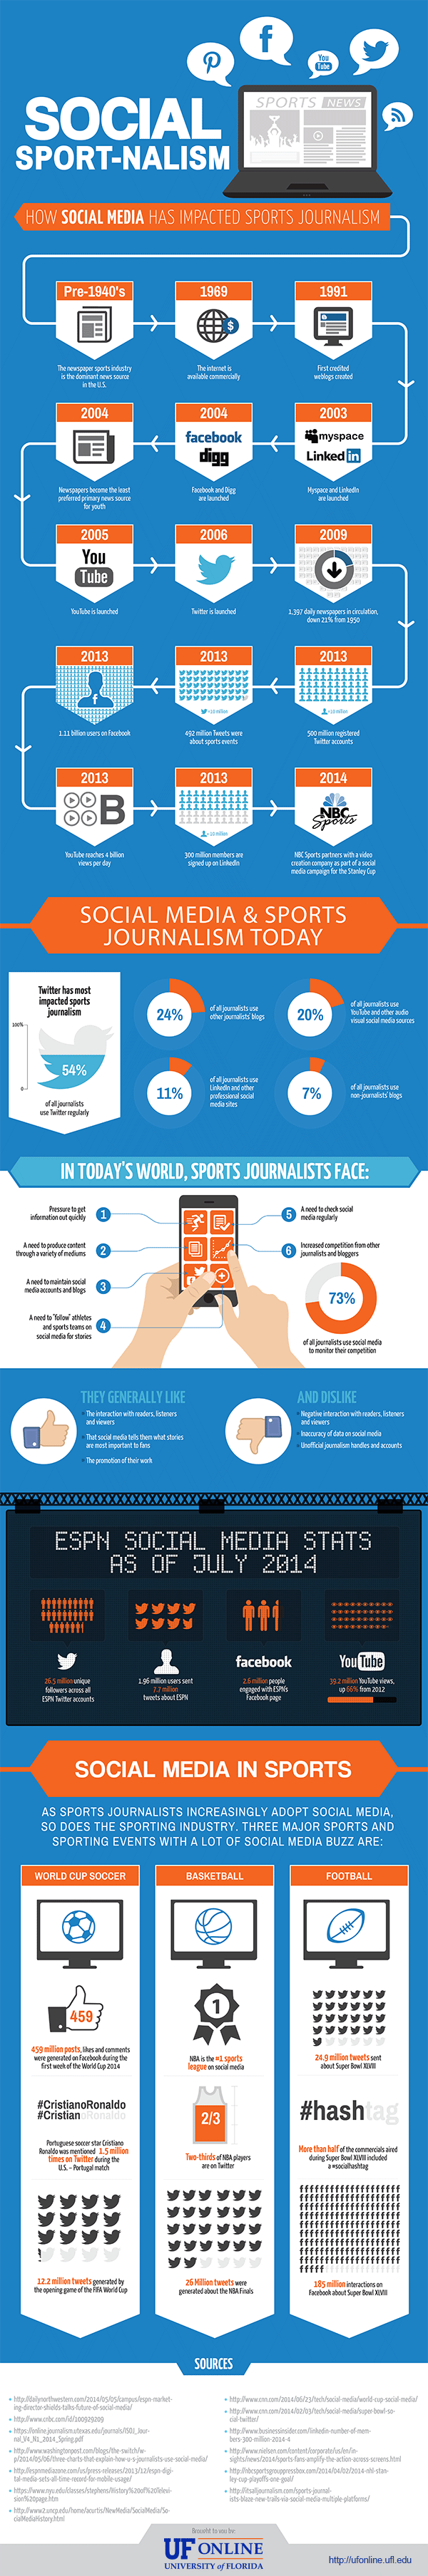 UF Online Infographic: Social Media & Sports Journalism